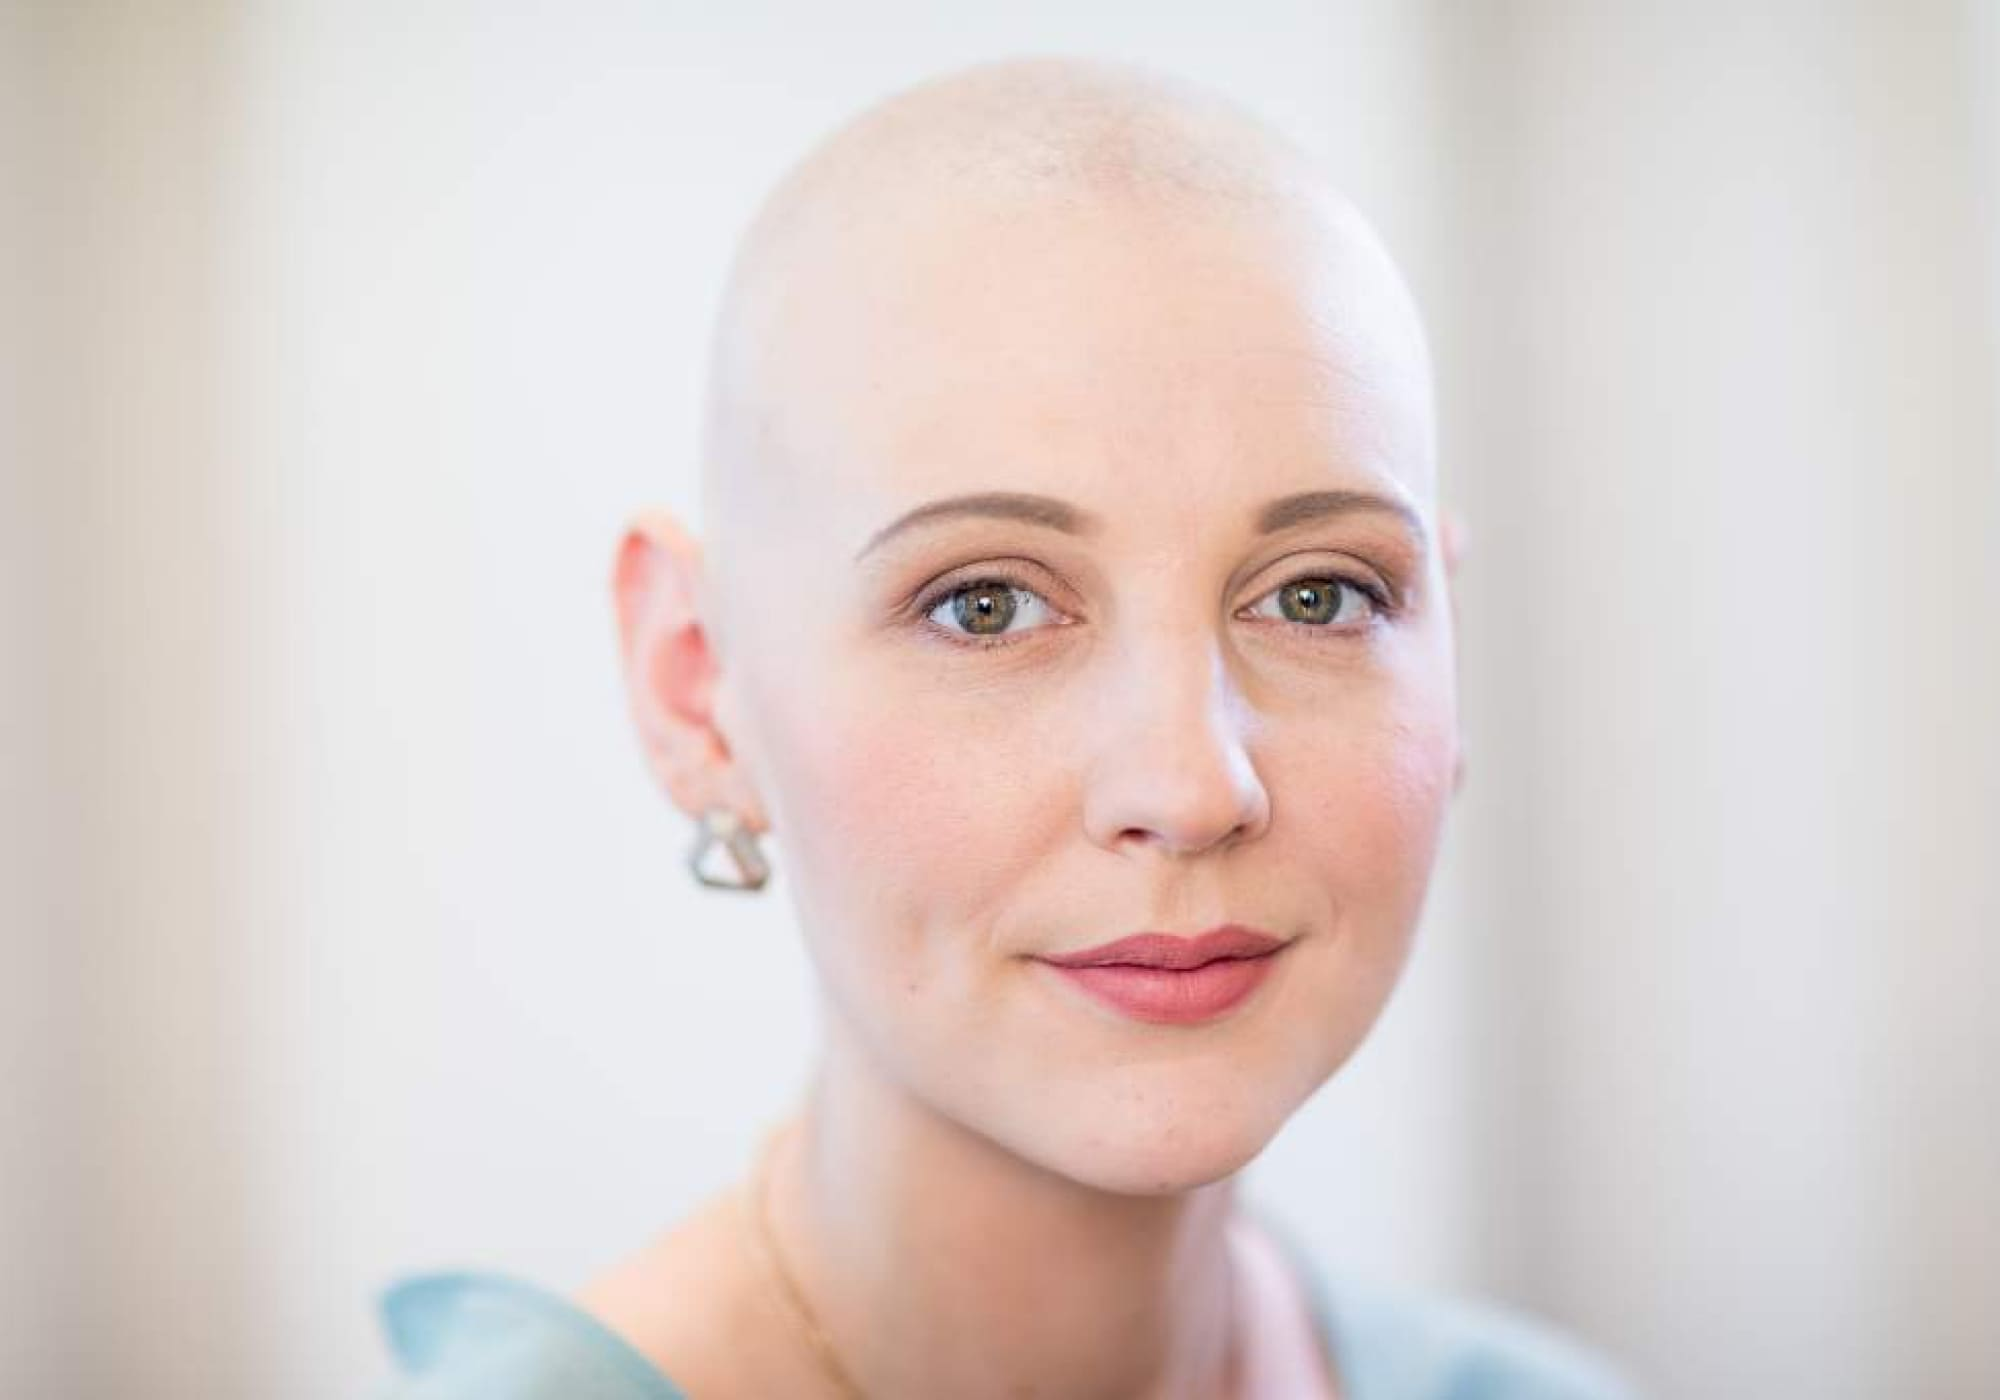 Strengthen the well-being of people with cancer